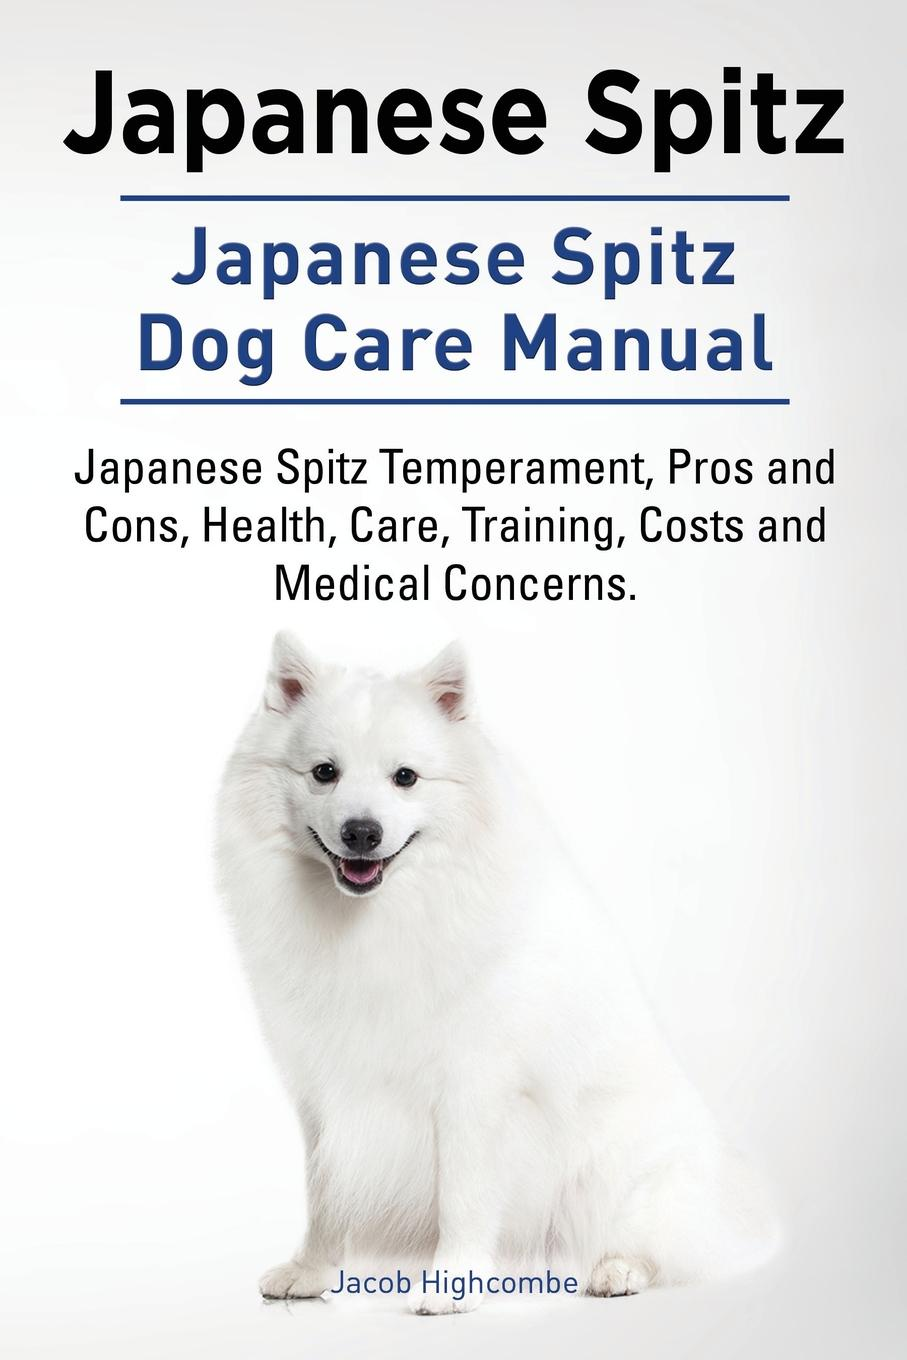 Jacob Highcombe Japanese Spitz. Japanese Spitz Dog Care Manual. Japanese Spitz Temperament, Pros and Cons, Health, Care, Training, Costs and Medical Concerns. zyy copper chandeliers restaurant bar bedside study kitchen bathroom vintage creative personality nordic japanese modern